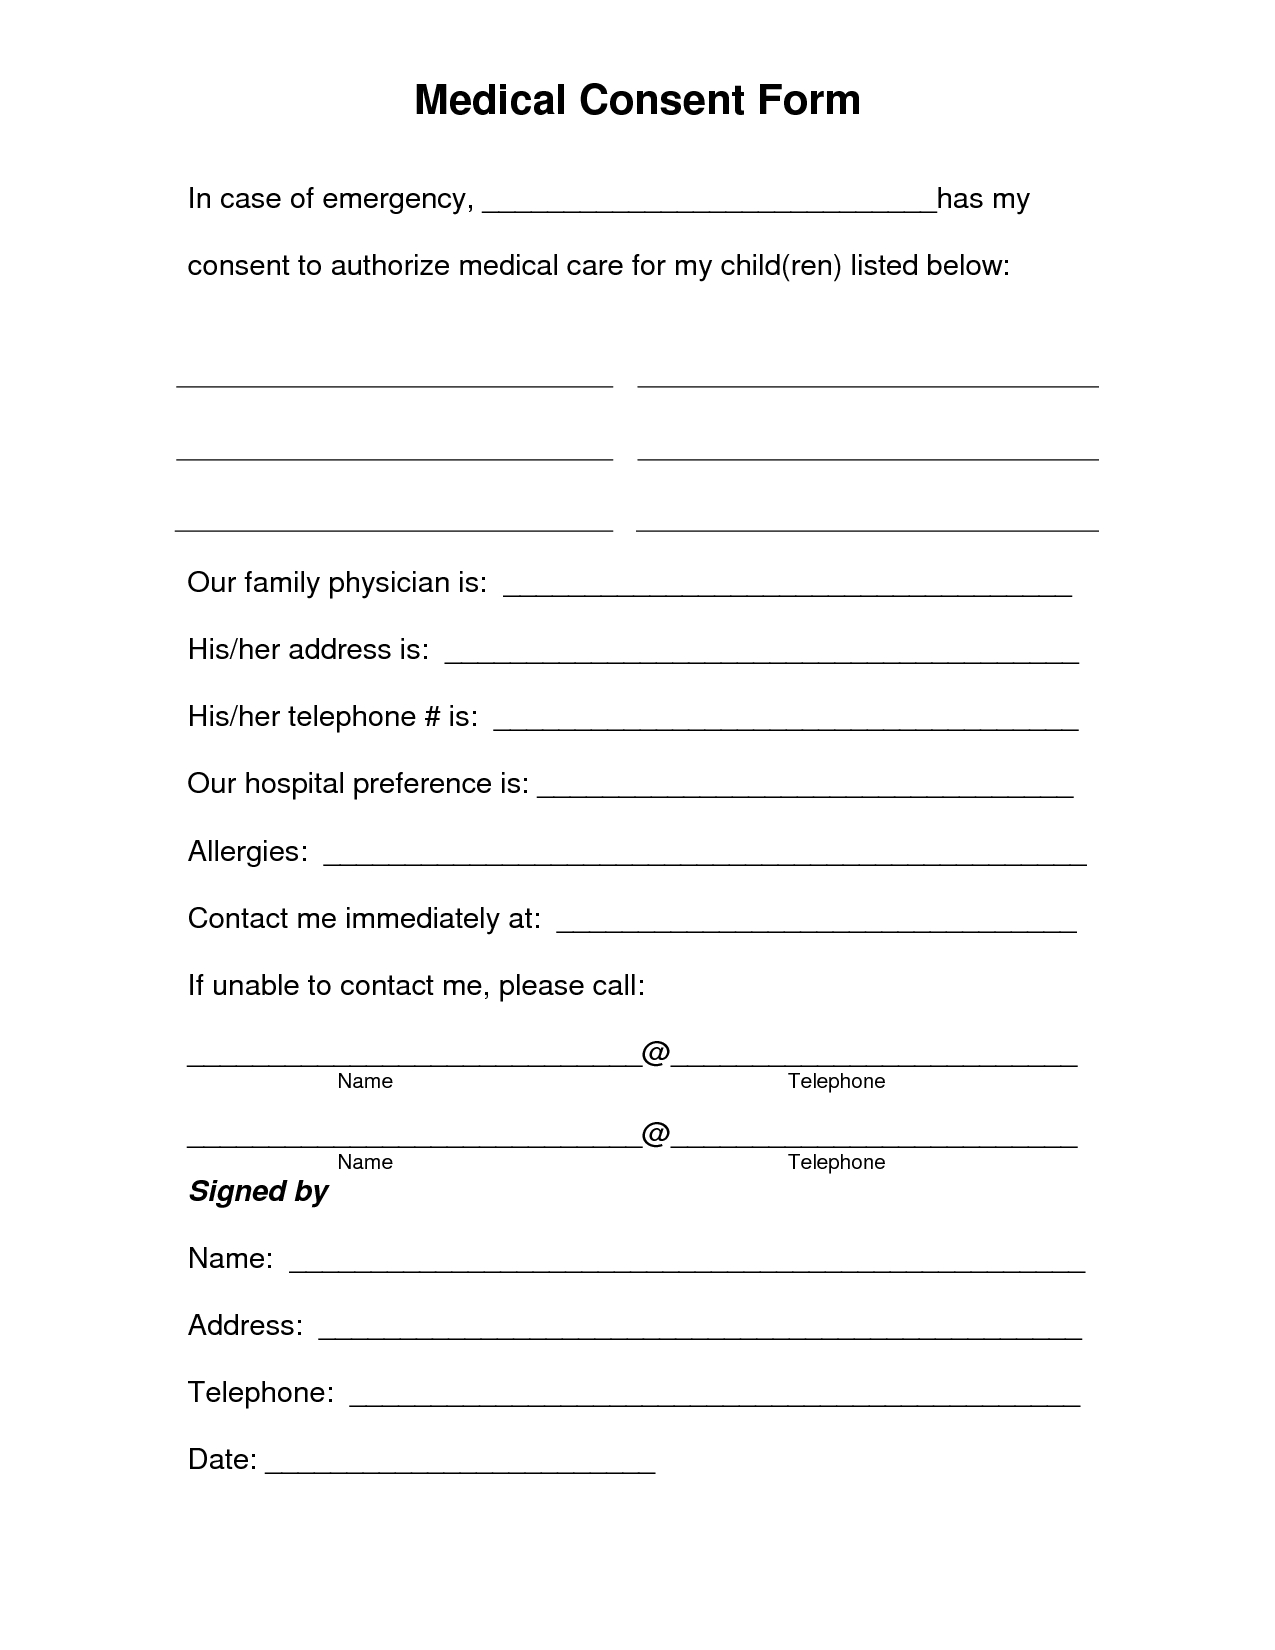 Free Printable Medical Consent Form | Free Medical Consent Form - Free Printable Medical Release Form